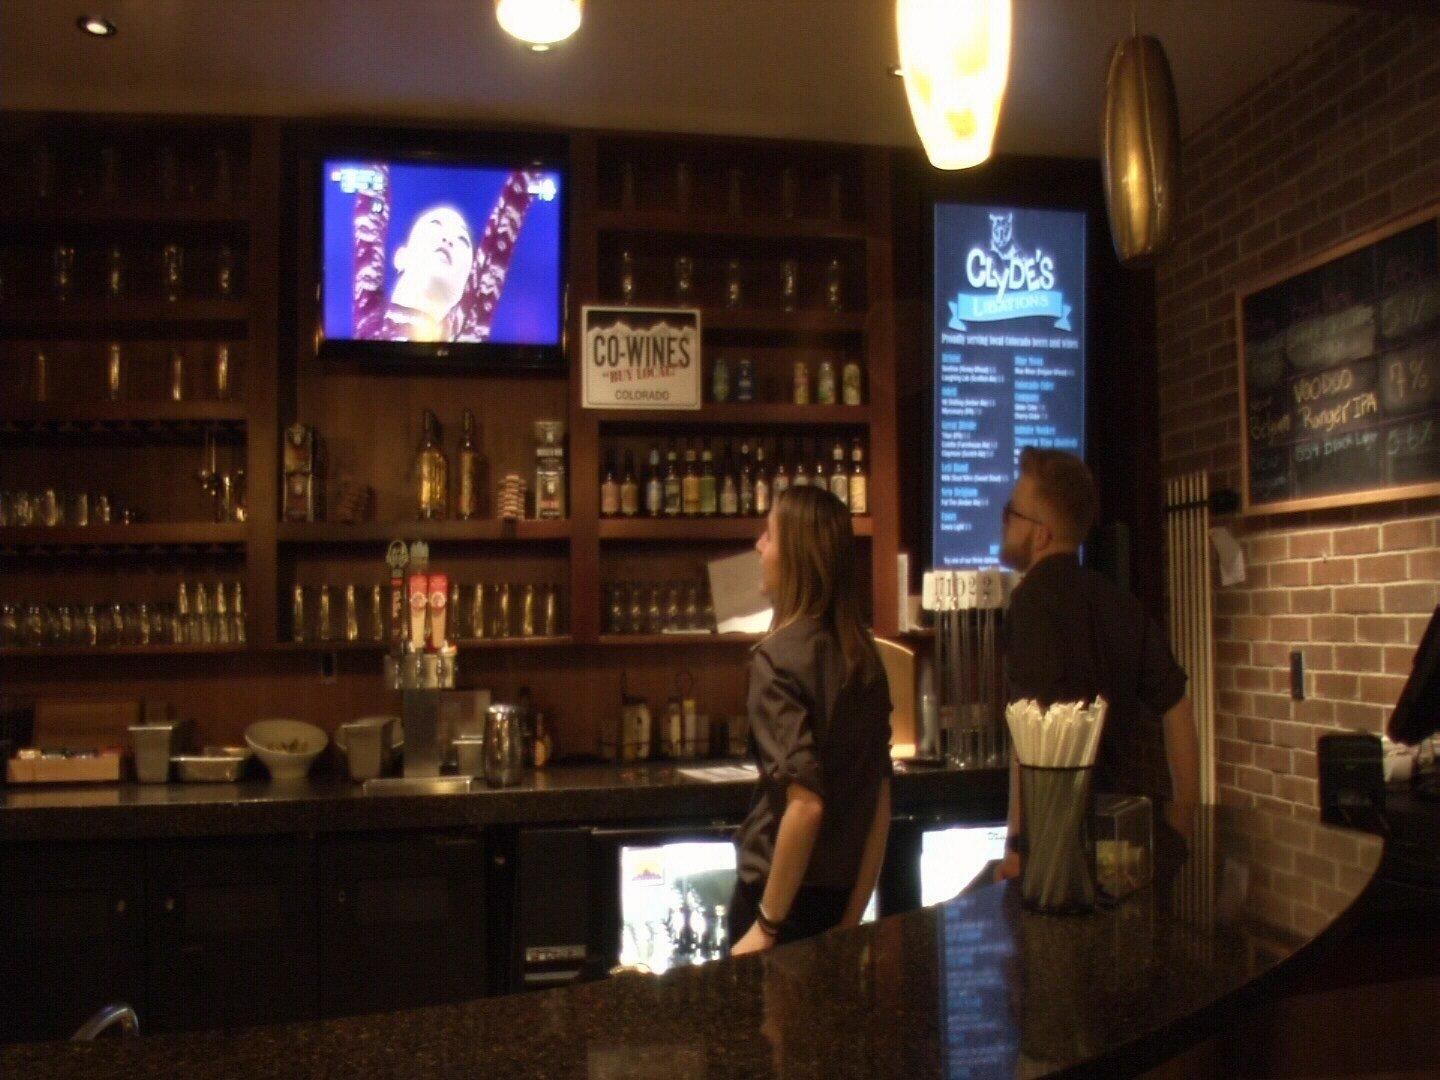 Students and staff gather to watch Mirai Nagasu compete in the winter Olympics at Clyde's Gastropub on the UCCS campus. (KOAA)